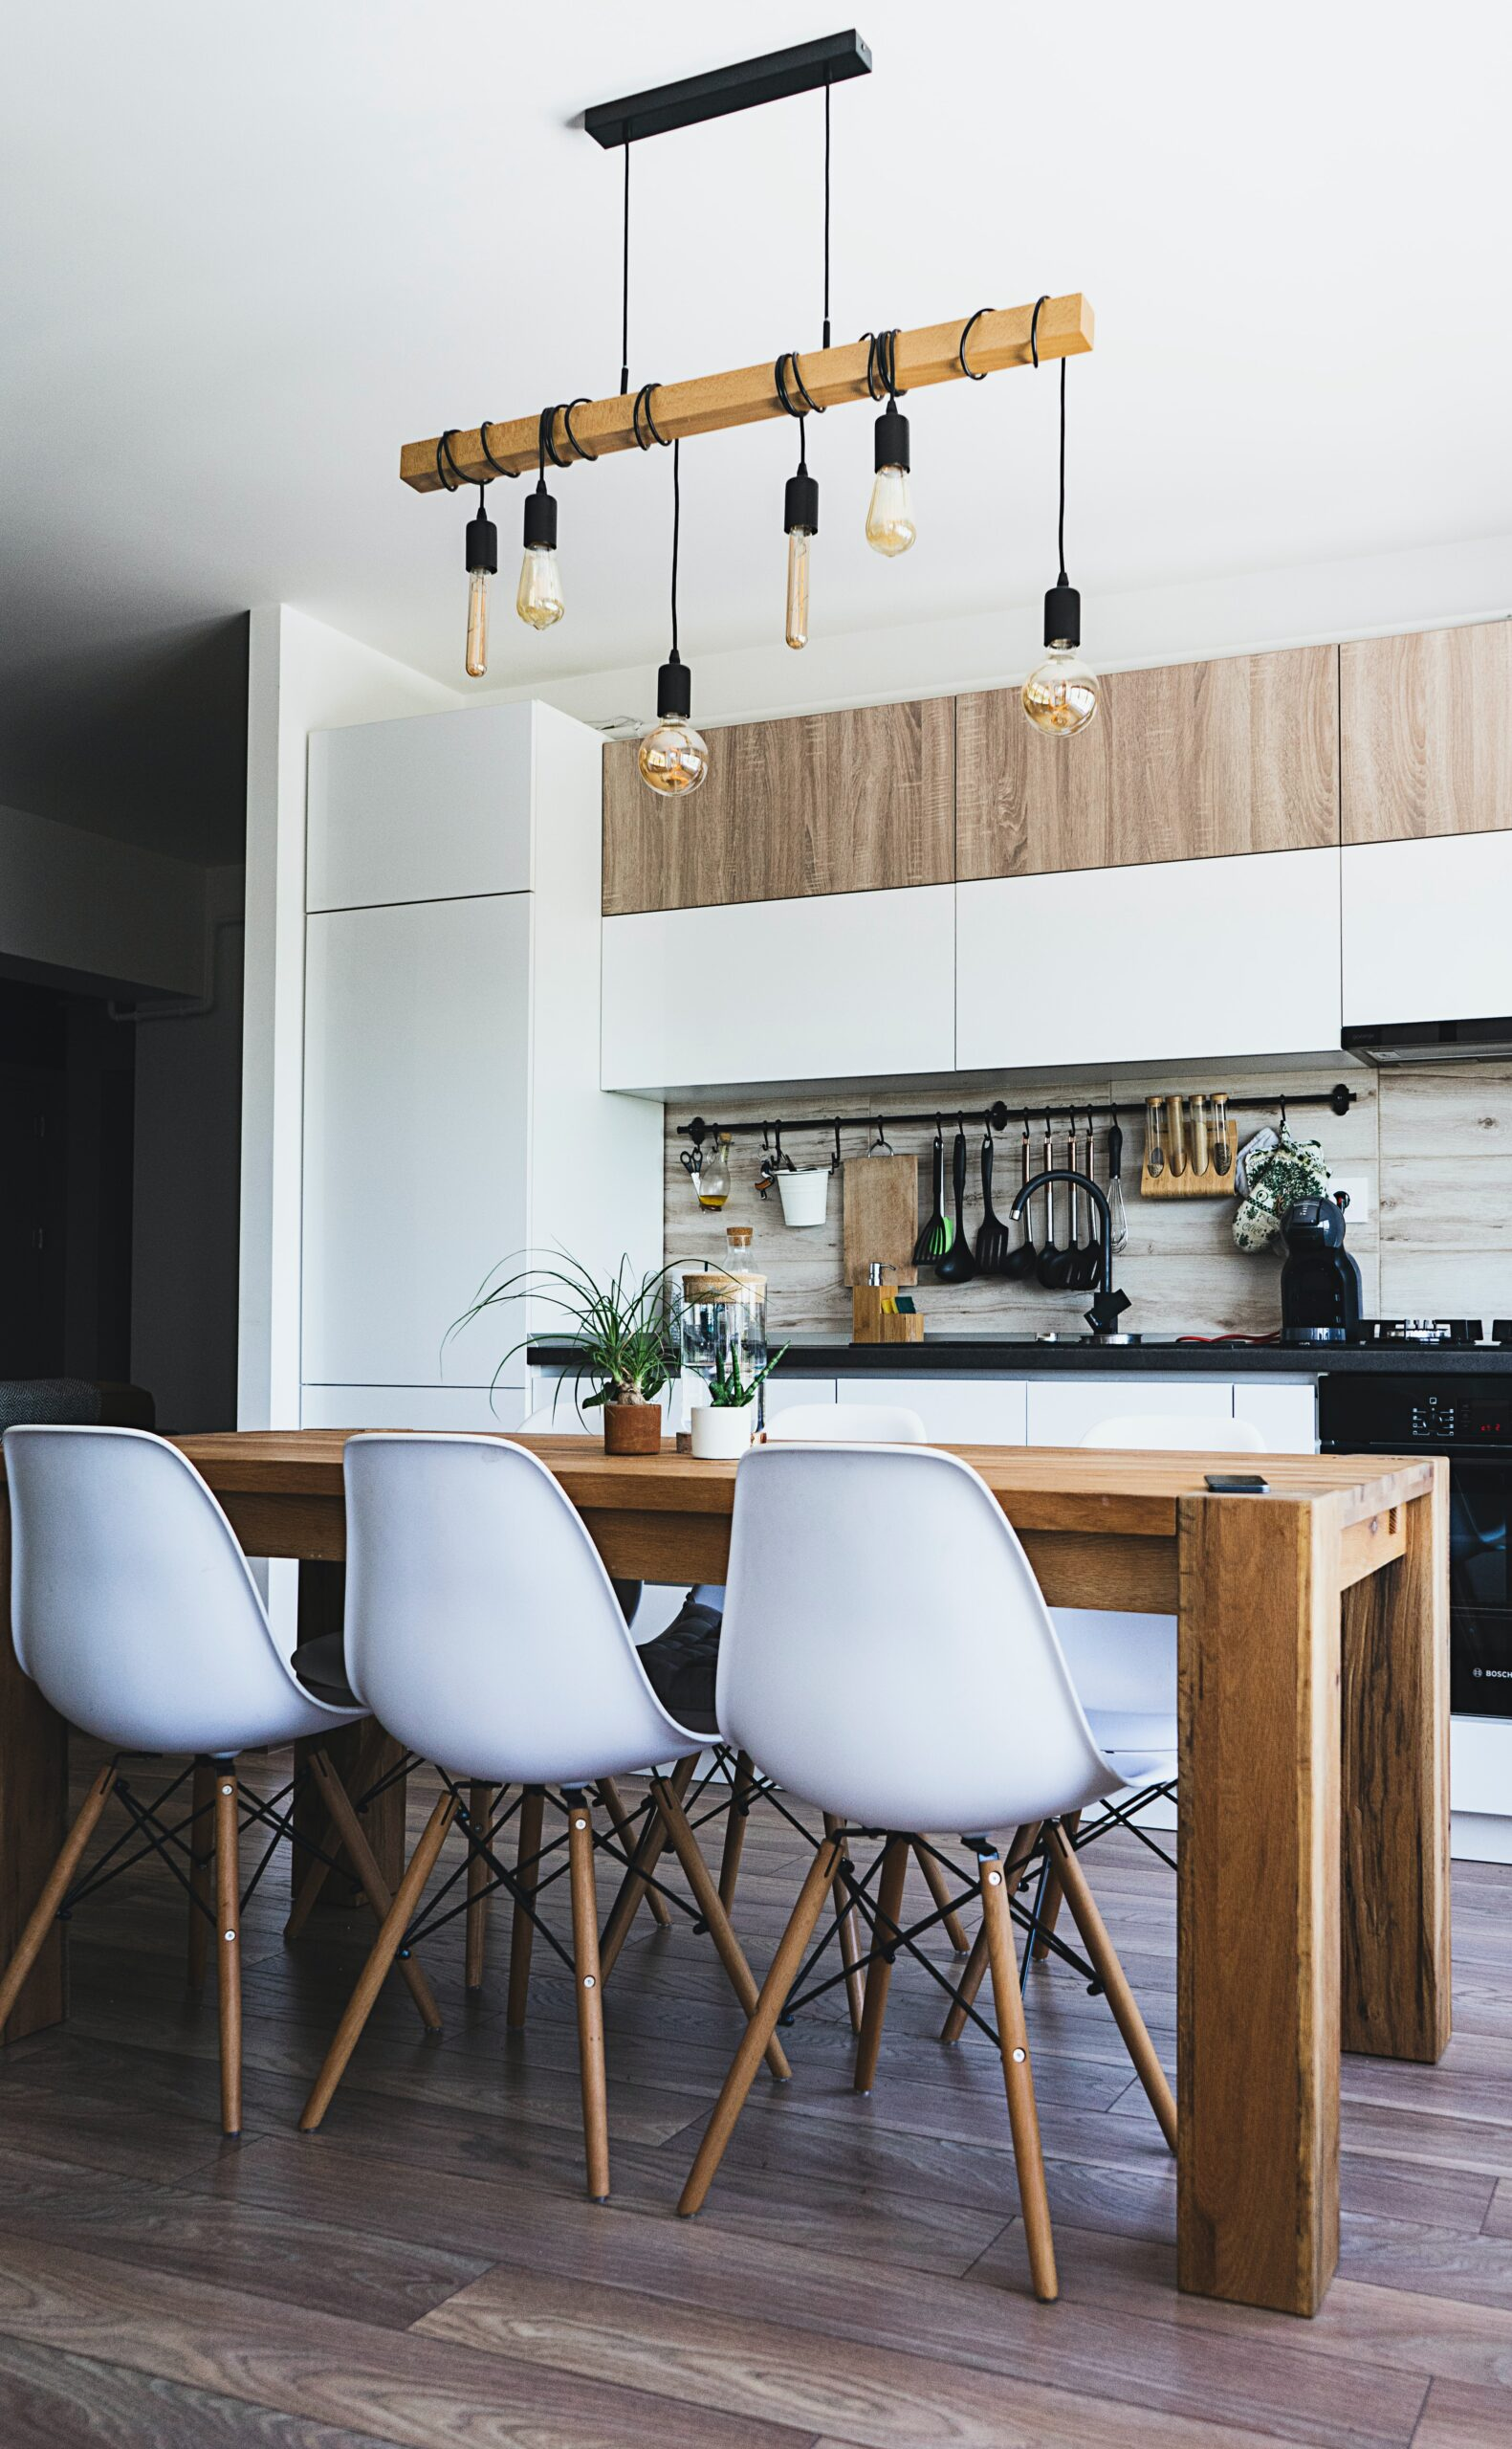 Here's How To Add Value To Your Home